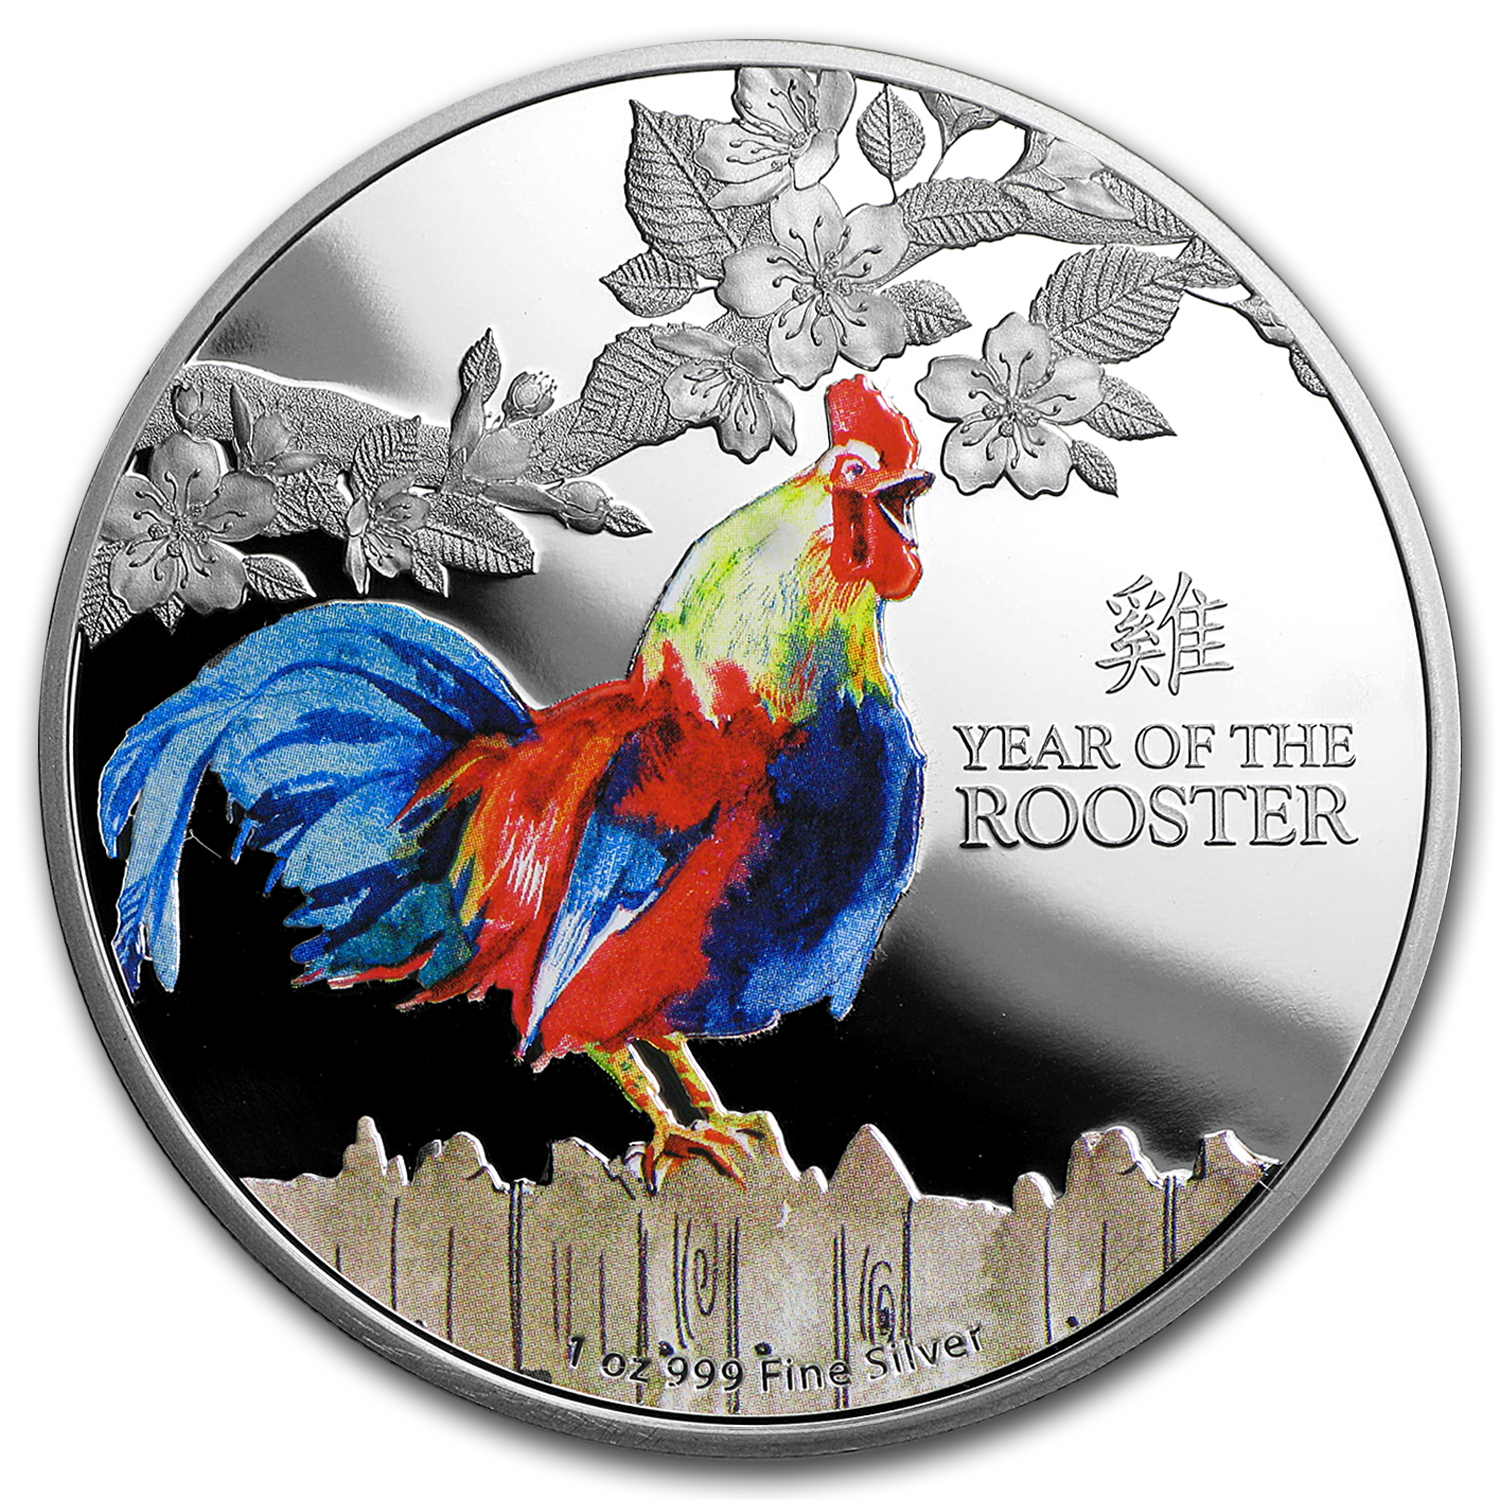 2017 NZL 1 oz Proof Silver $2 Lunar Year of the Rooster (Color)